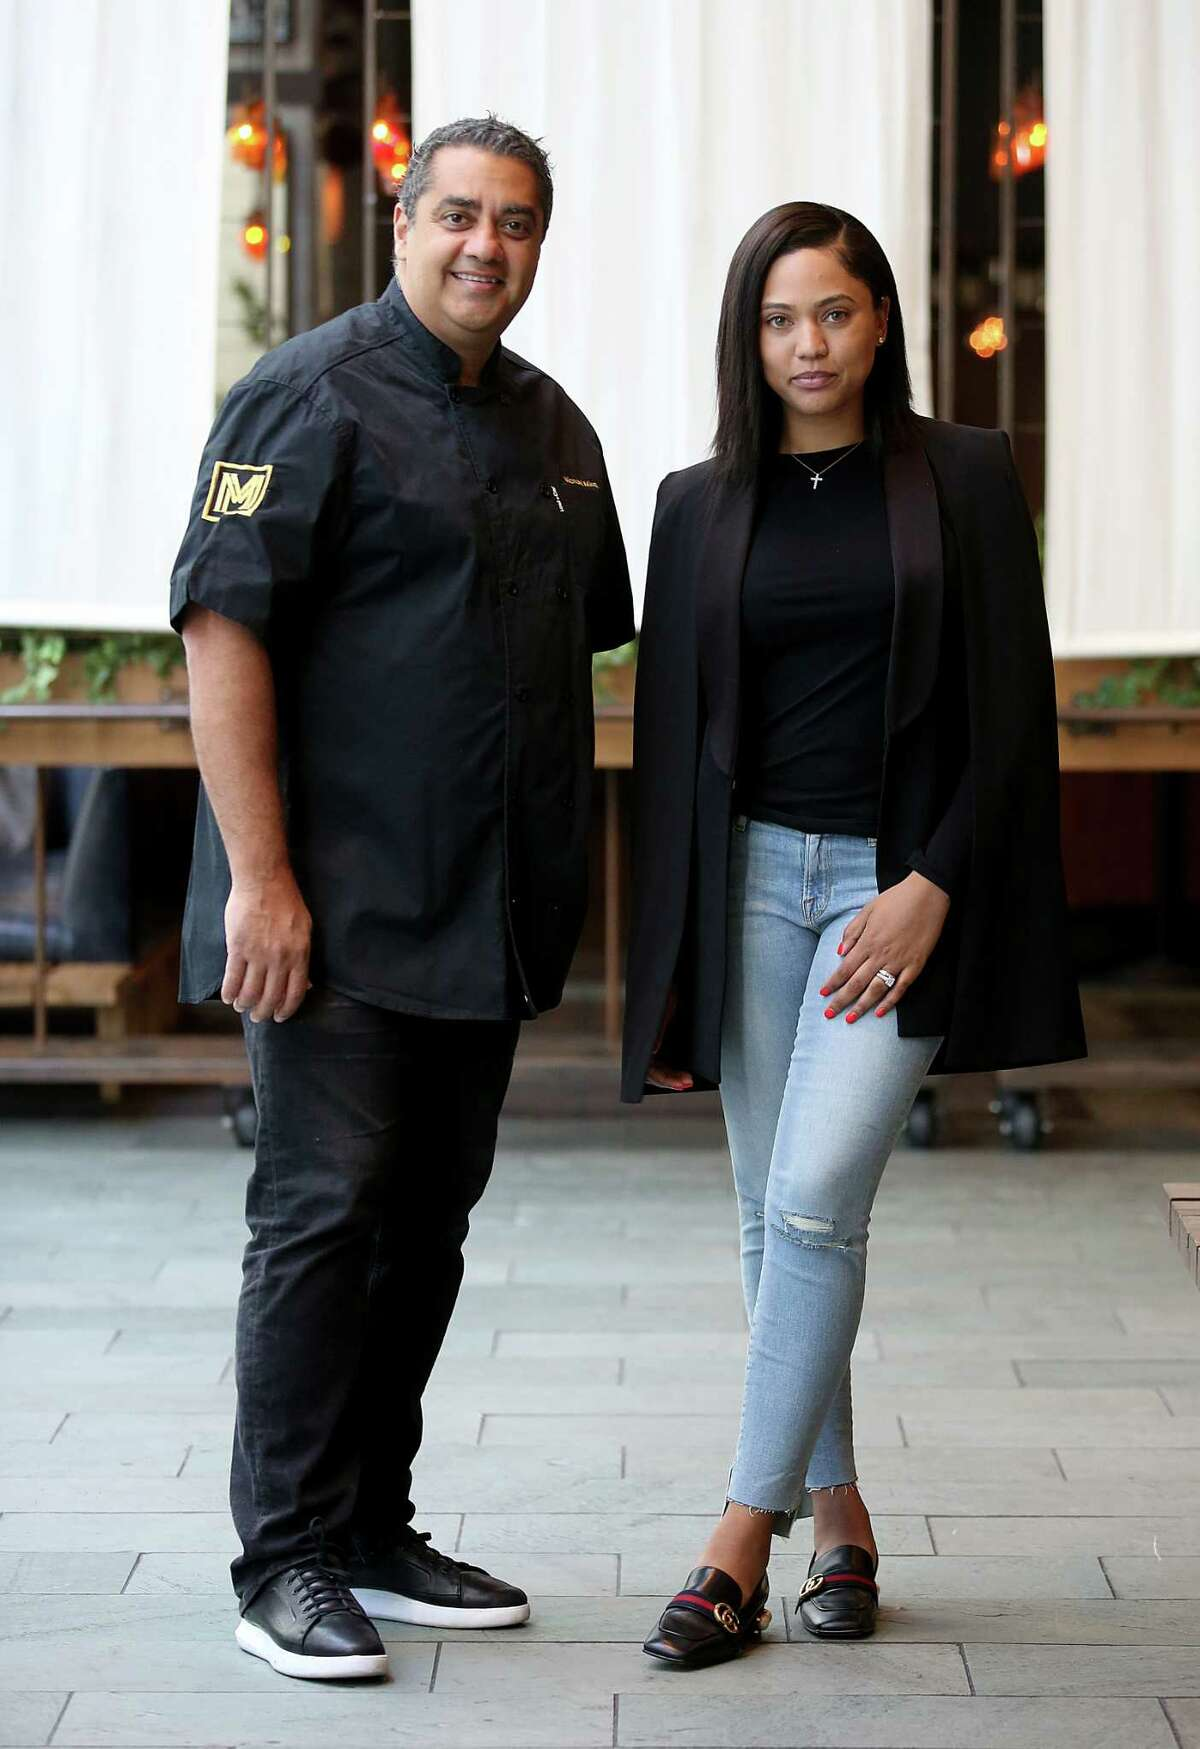 Michael Mina and Ayesha Curry are partners in new restaurant called International Smoke.